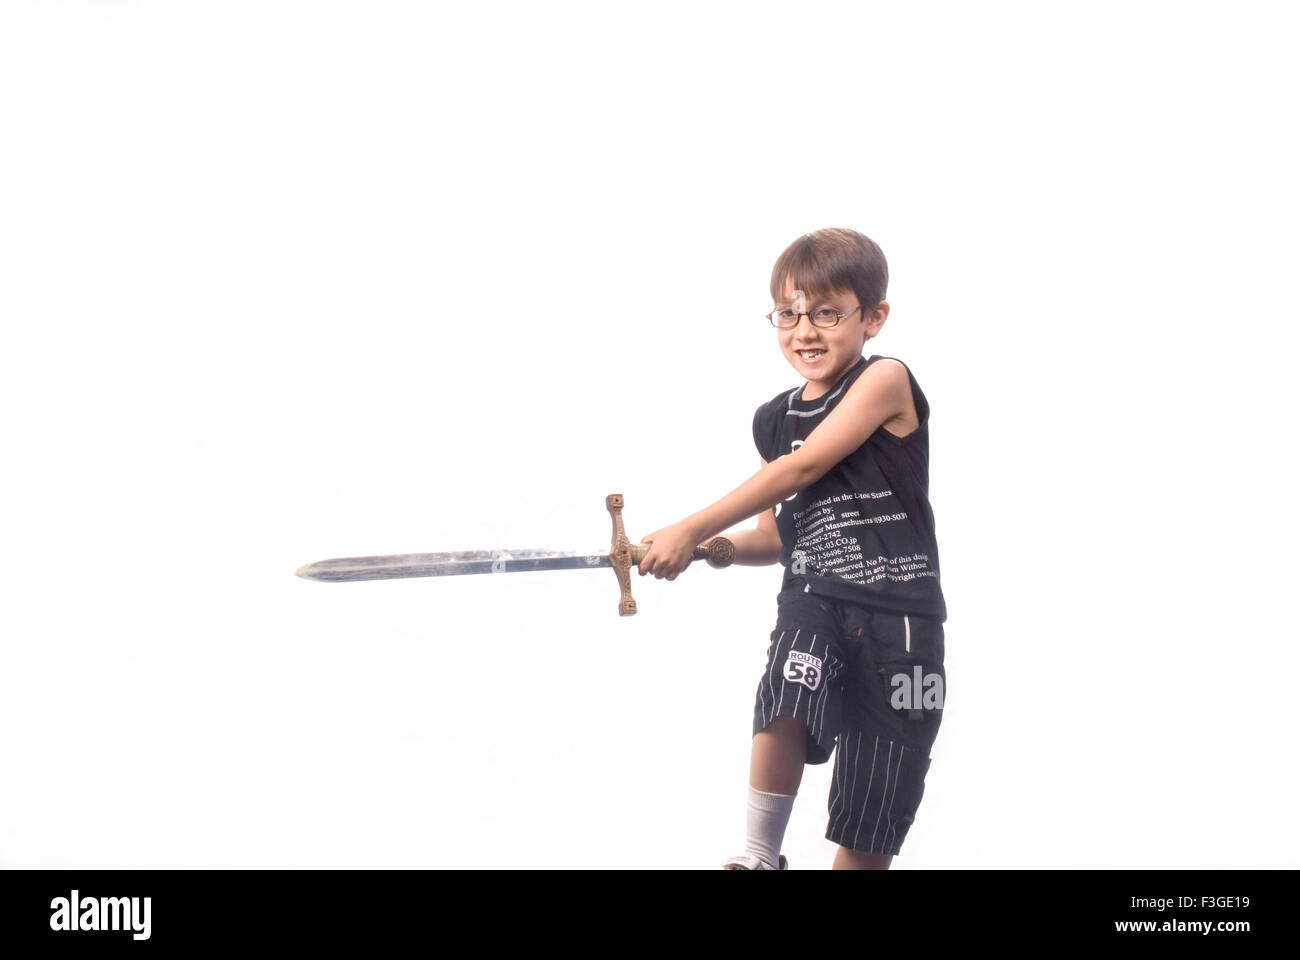 Teenager boy look alike Harry Potter playing with sword MR#733 - Stock Image